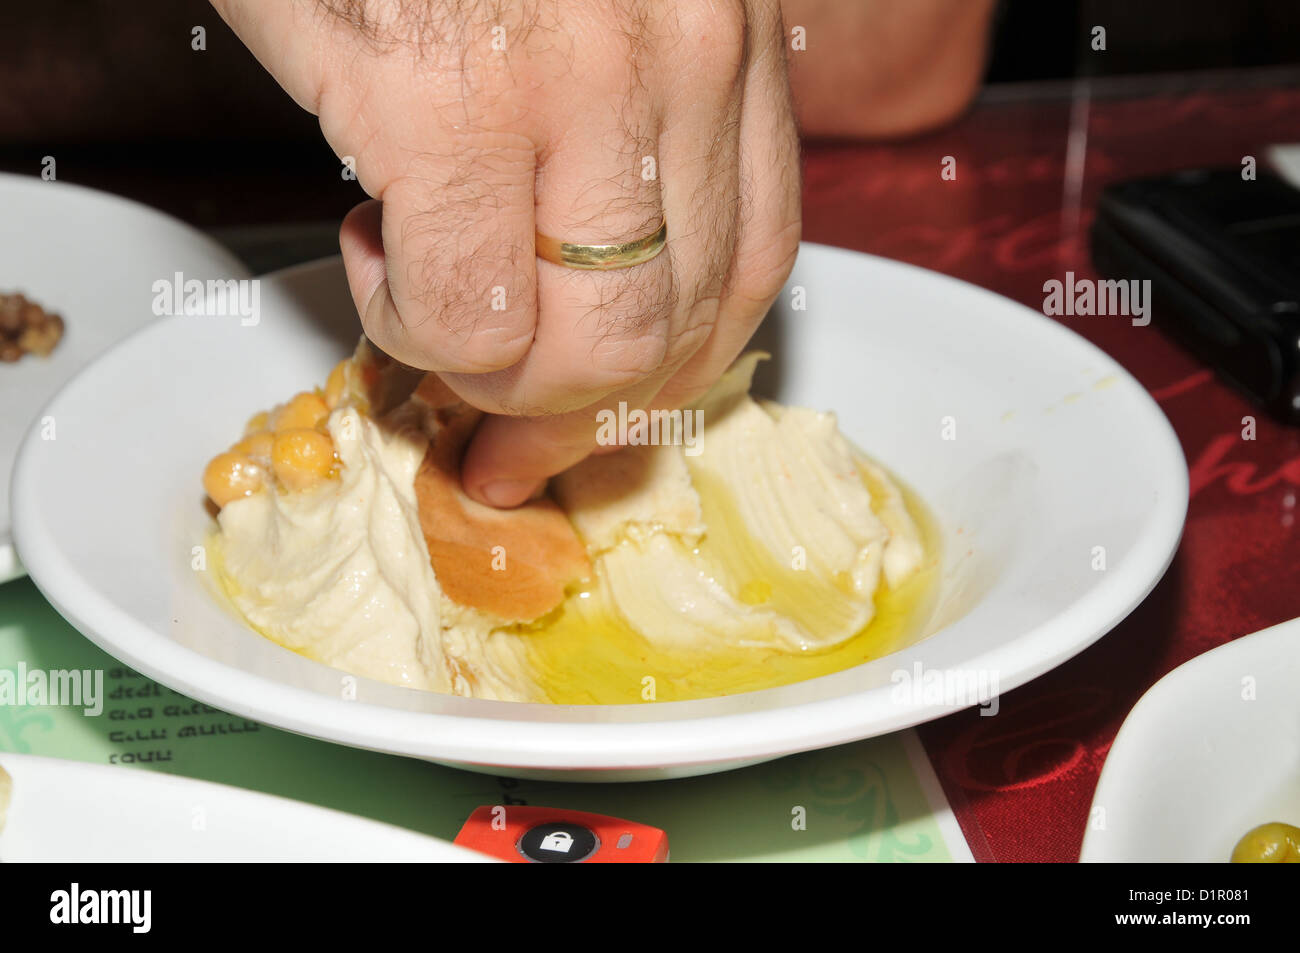 A serving of Humus, tahini and Olive oil - Stock Image